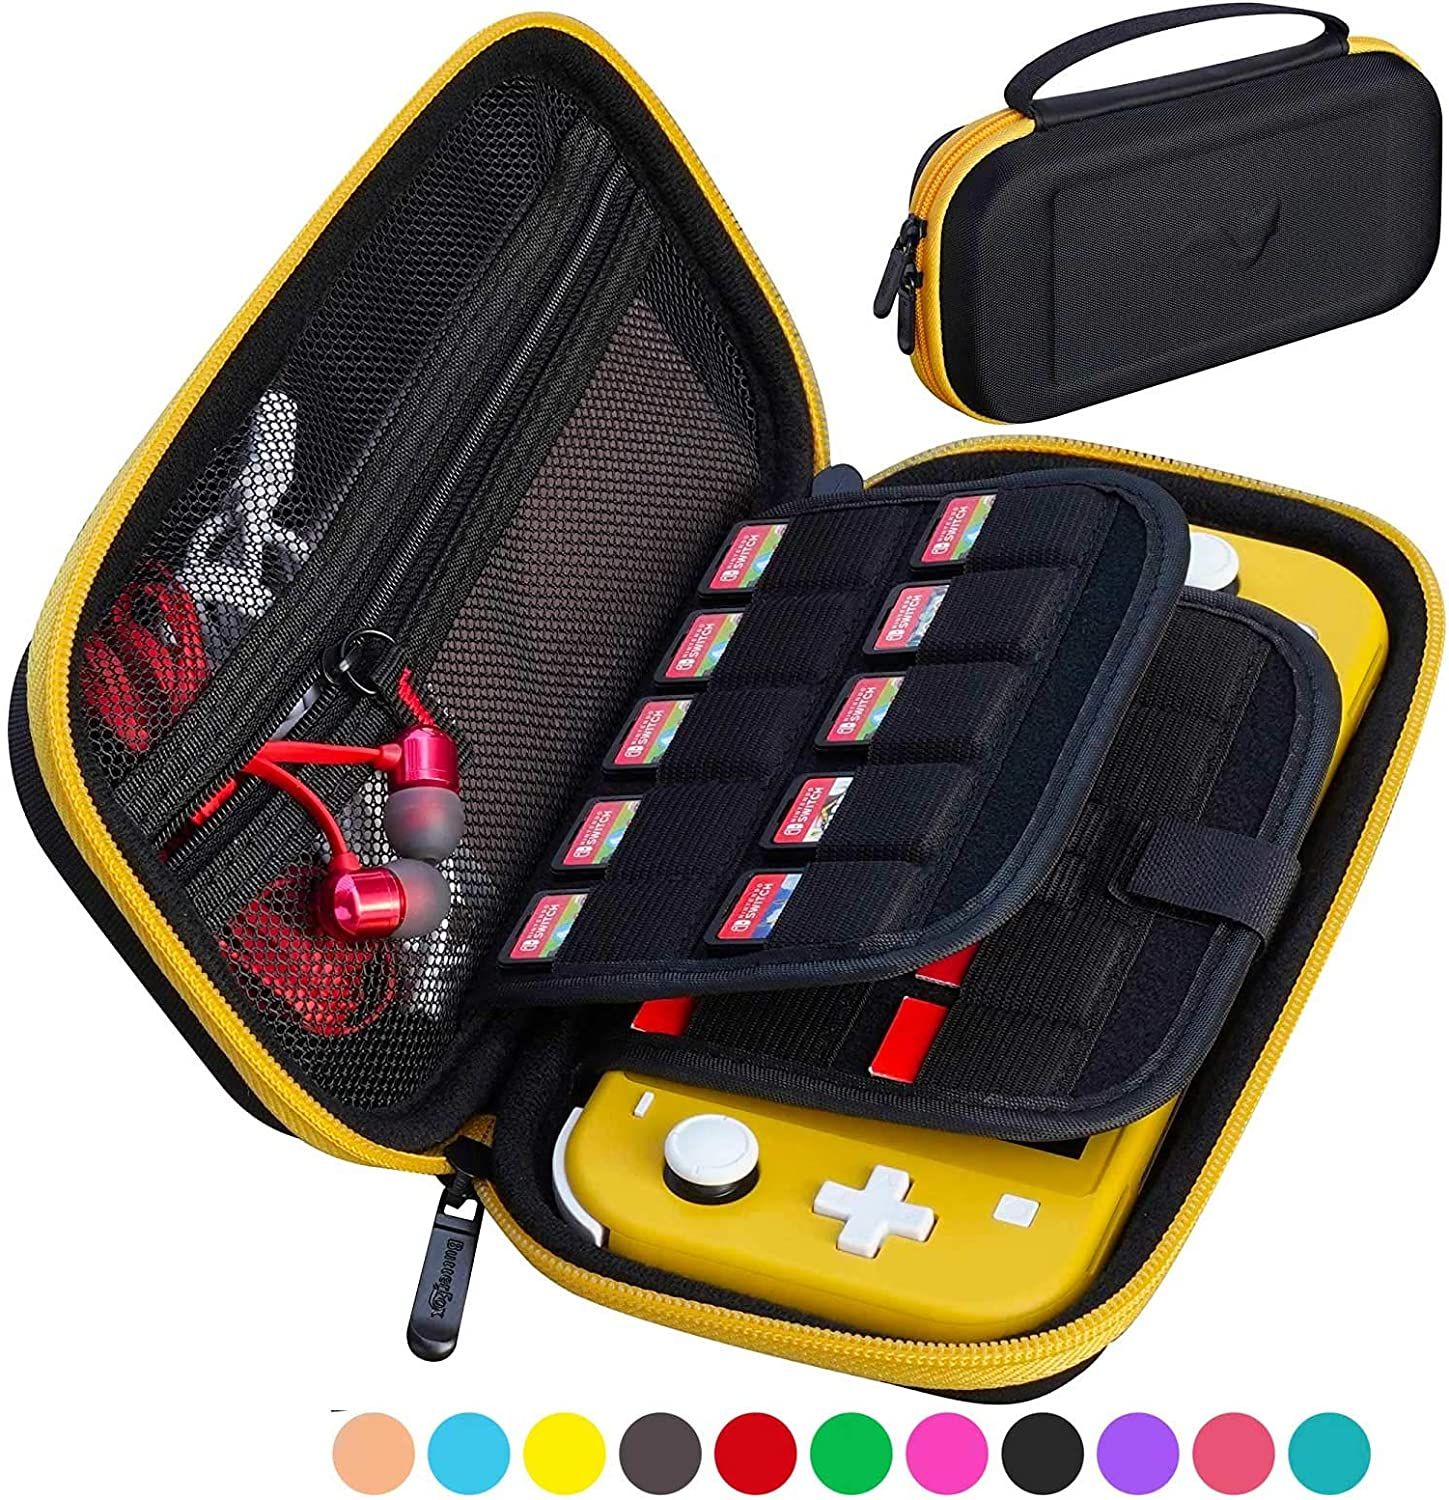 ButterFox Slim Compact Carrying Case for Nintendo Switch Lite with 19 Game and 2 Micro SD Card Holders, Storage for Switch Lite Accessories (Yellow/Black)